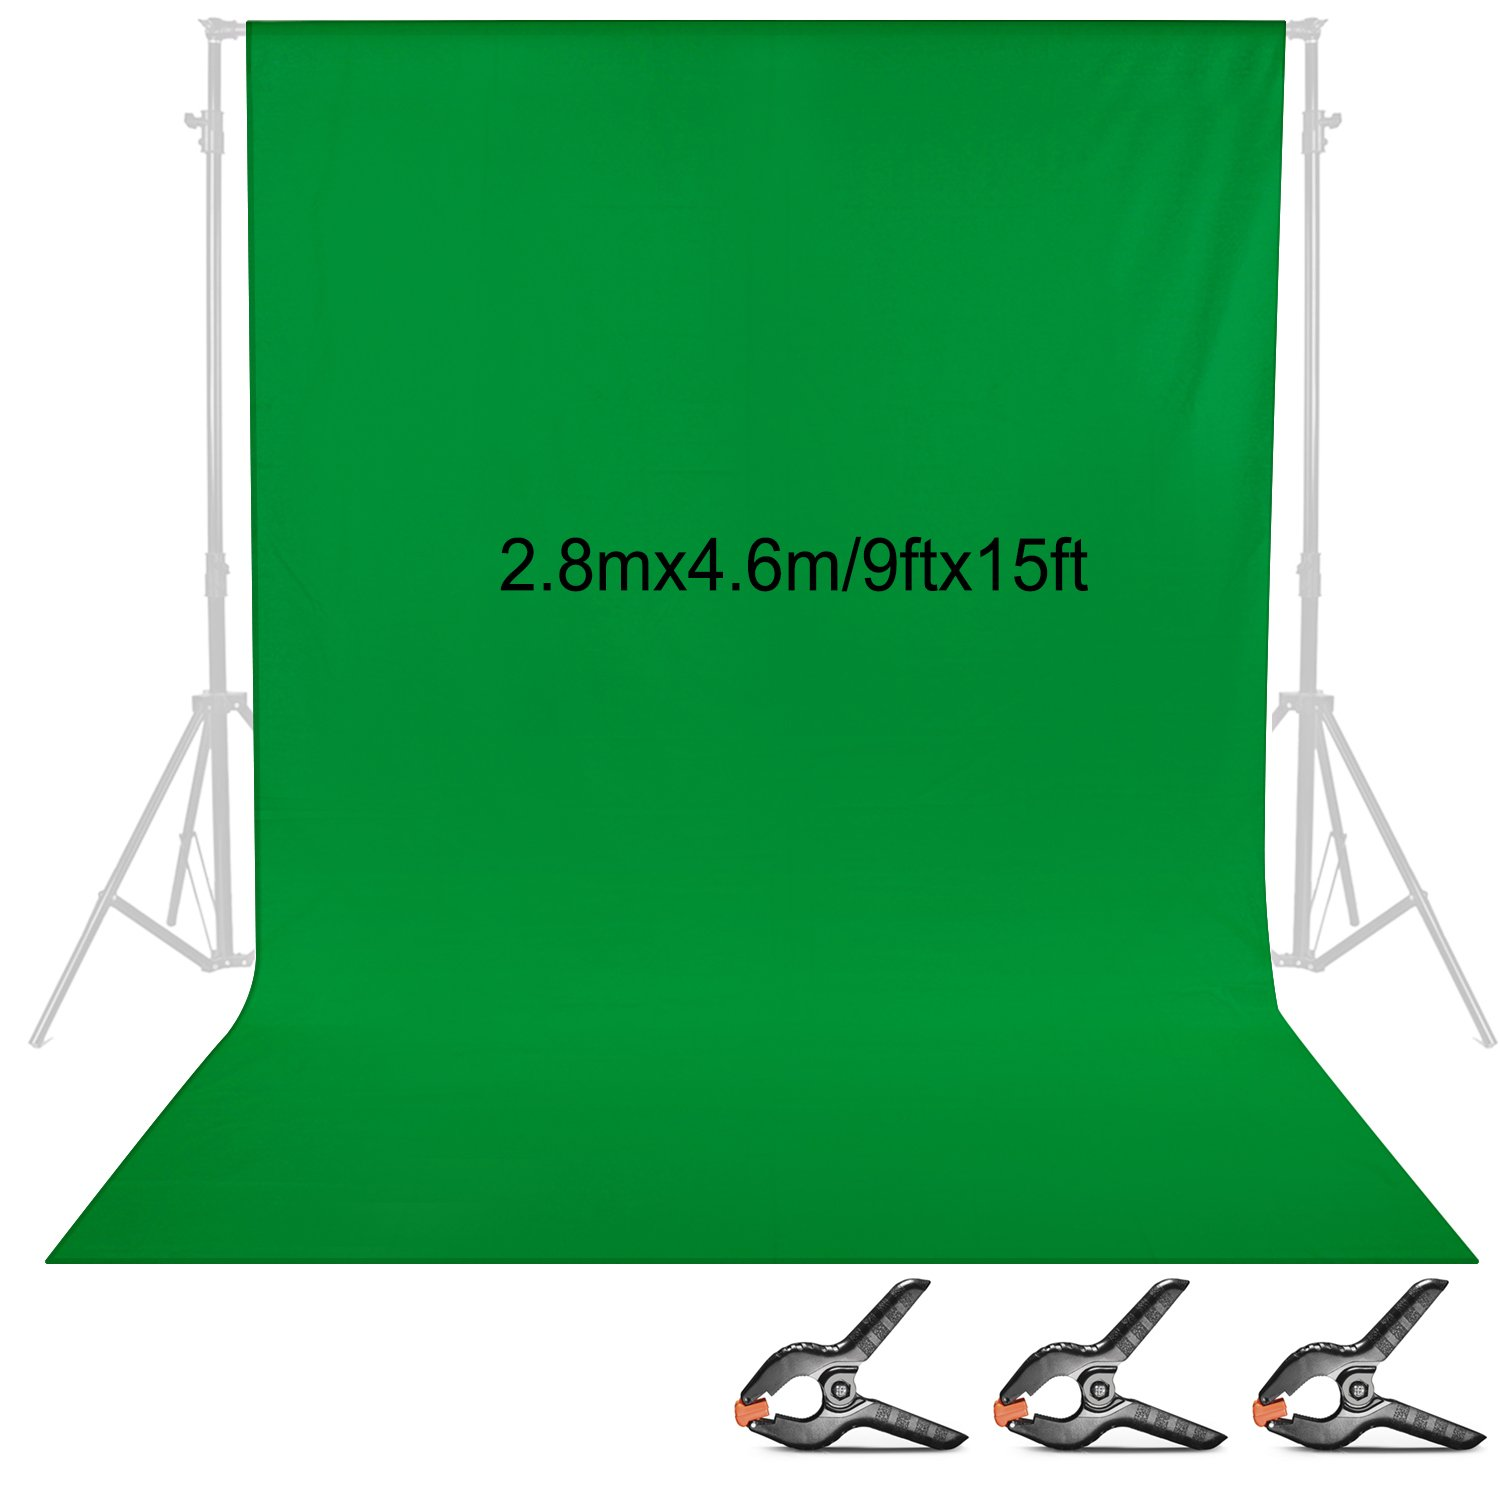 Neewer 9 x 15 Feet/2.8 x 4.6 Meters Fabric Photography Backdrop Background Screen with 3 Clamps for Photo Video Studio Shooting (Green) 10093248